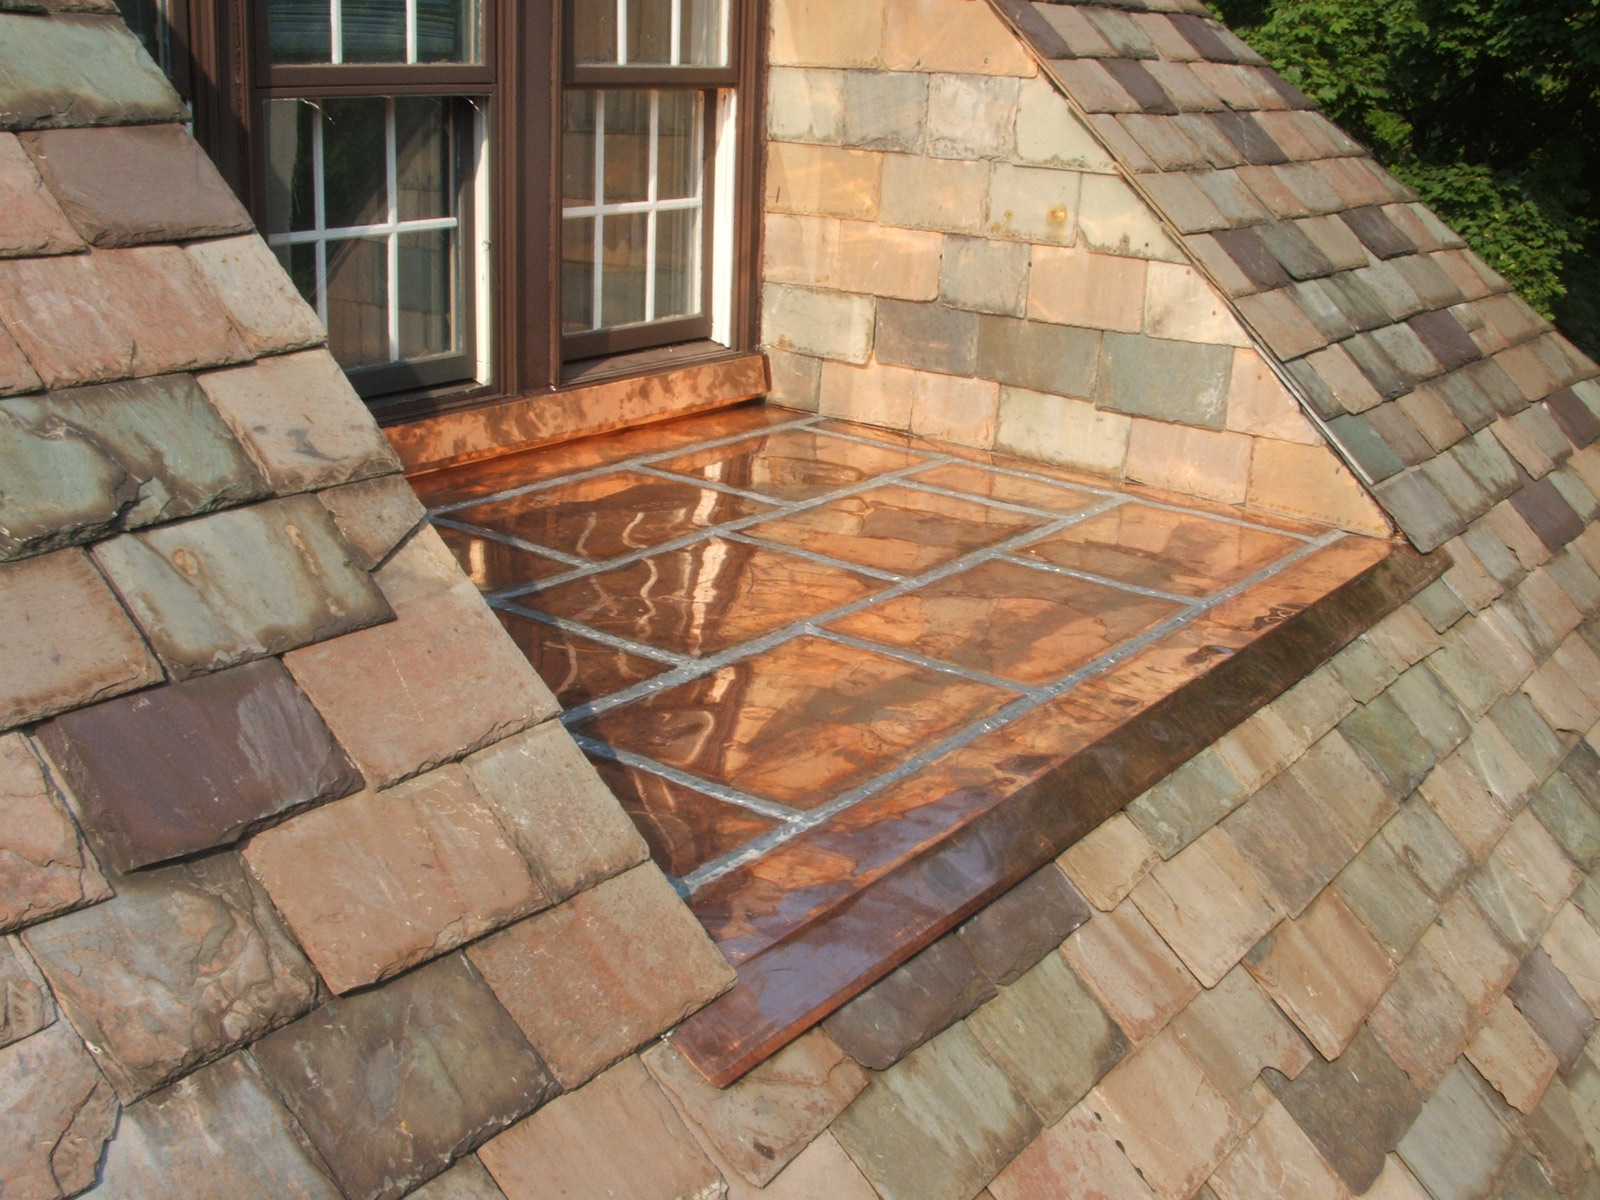 Its Not That It Looks Bad I Just Think Standing Seam Better Is All Now Copper Also Used In Gutters Typically A Slate And Tile Roof Follow Suit